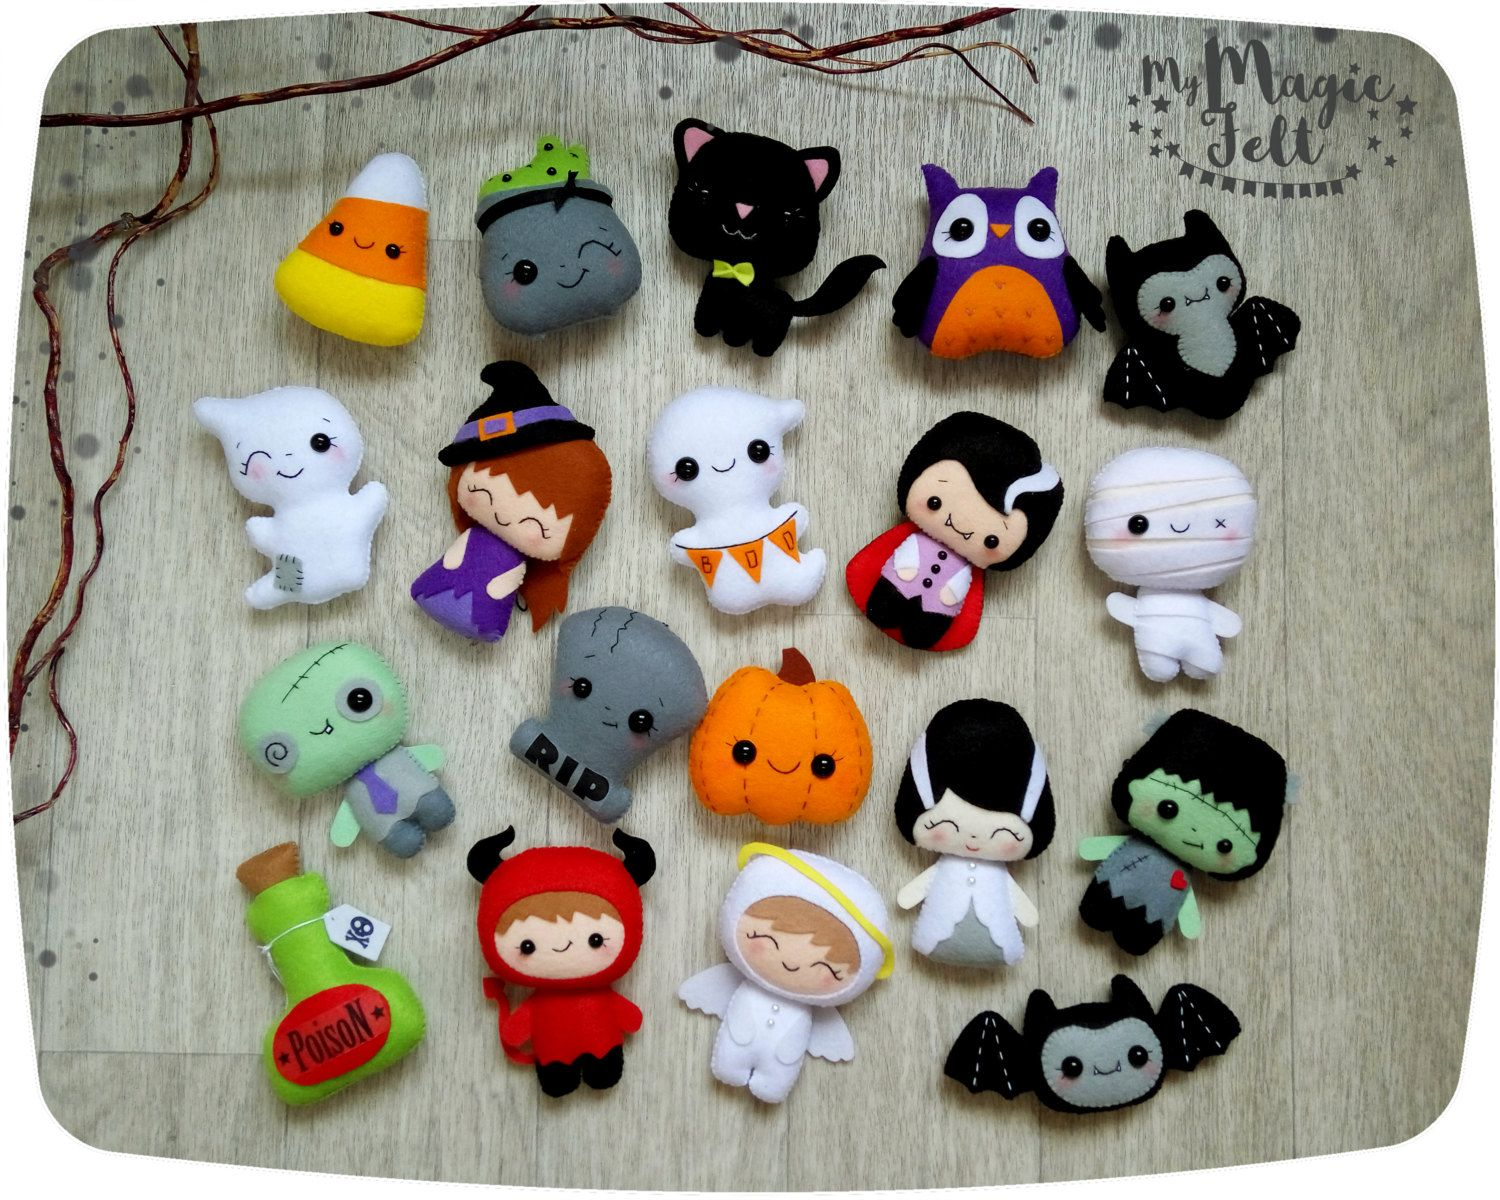 halloween ornaments set of 15 cute halloween ornament felt halloween decor felt toys halloween decorations party - Etsy Halloween Decorations